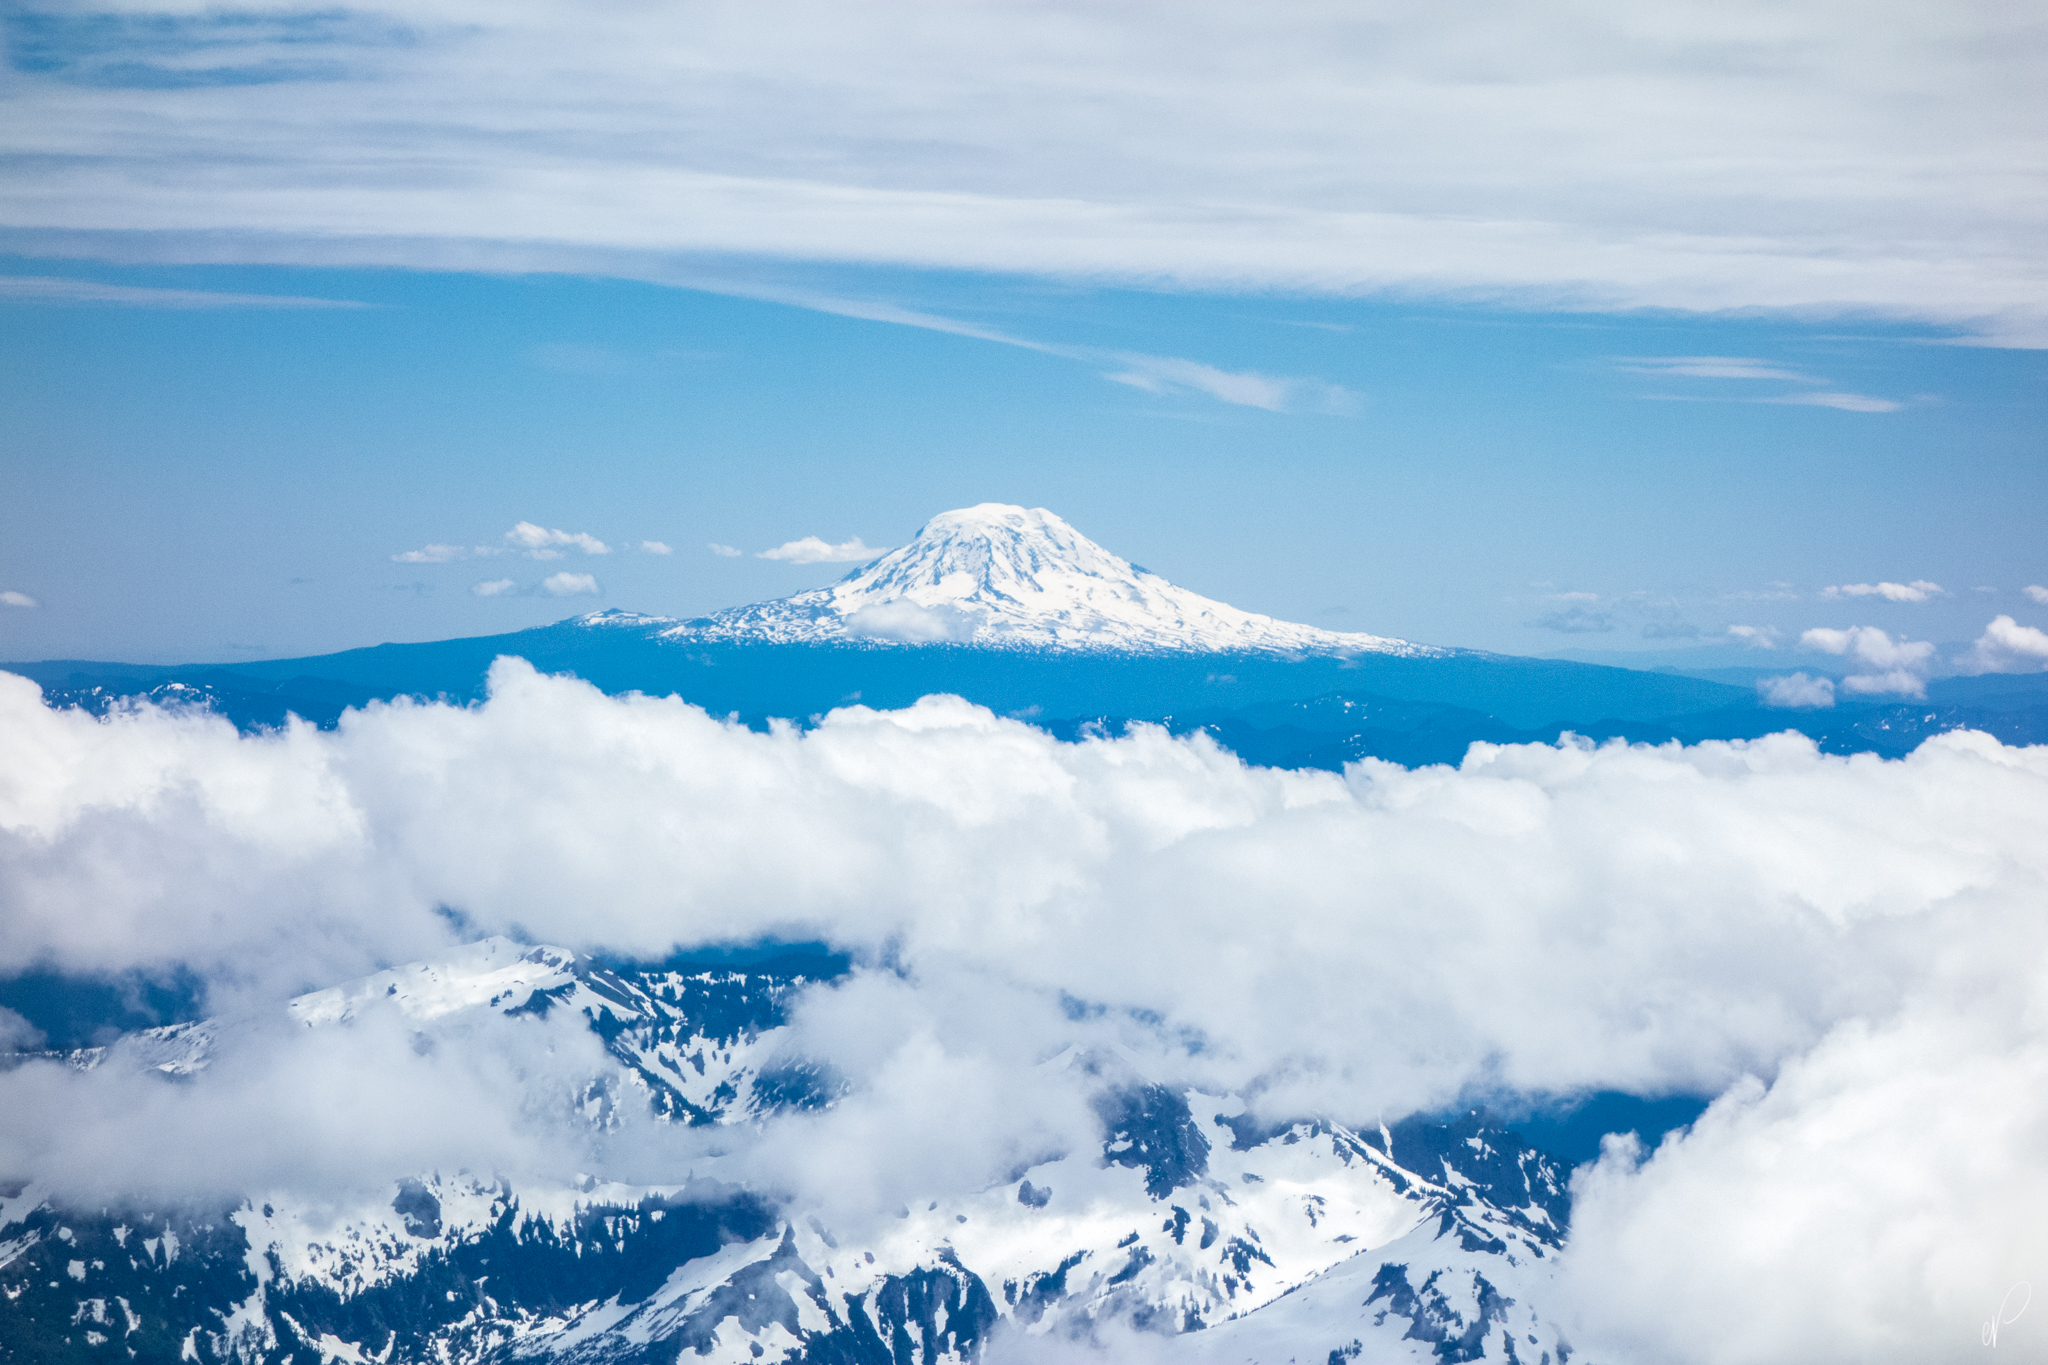 On the previous day, we barely got a view from Camp Muir, but on the descent, Adams was clearly visible.